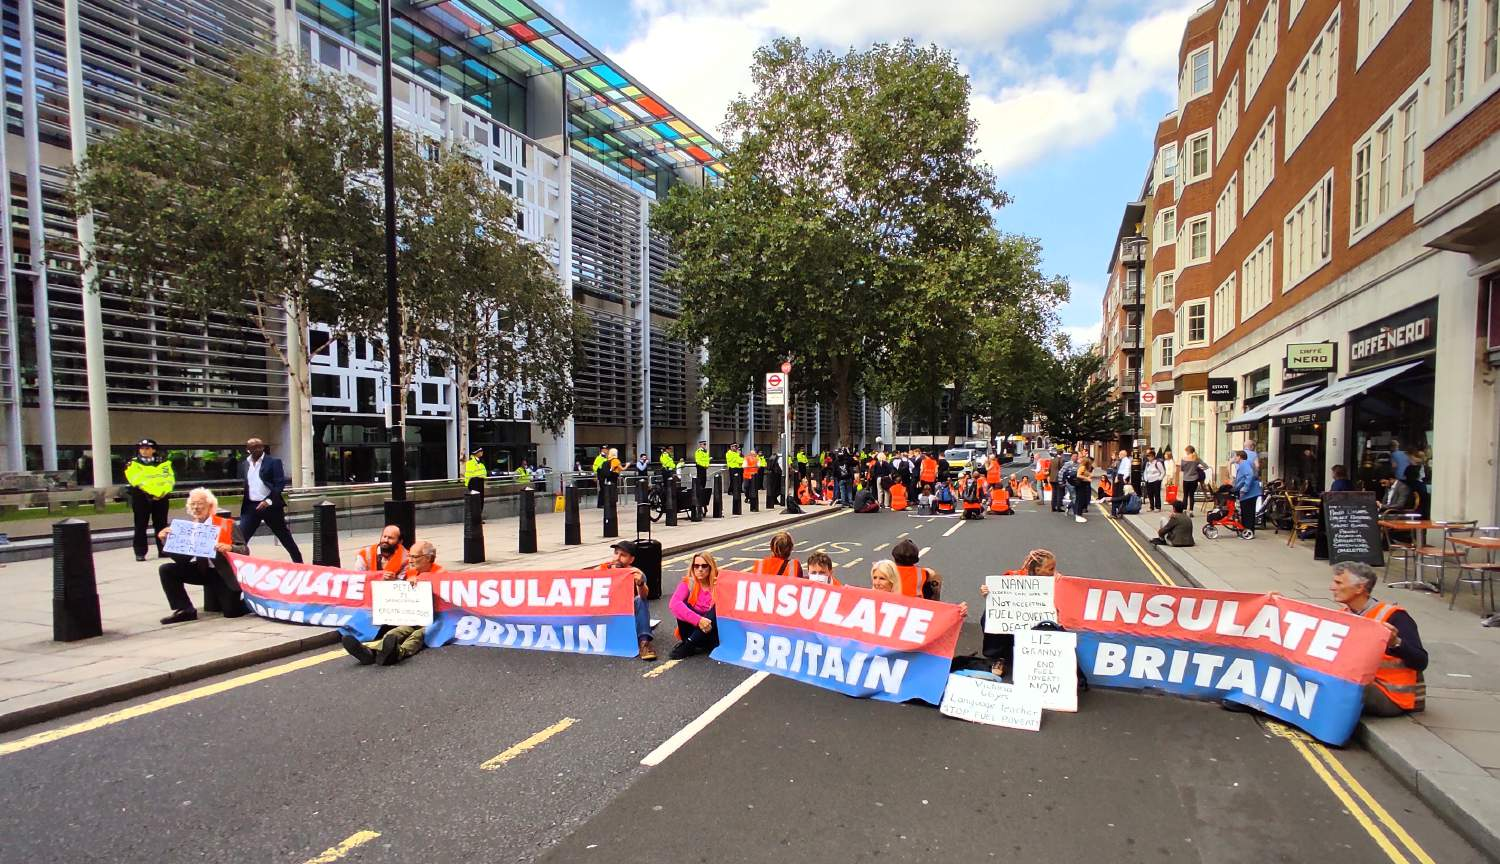 Insulate Britain: A New Kind of Climate Activism?